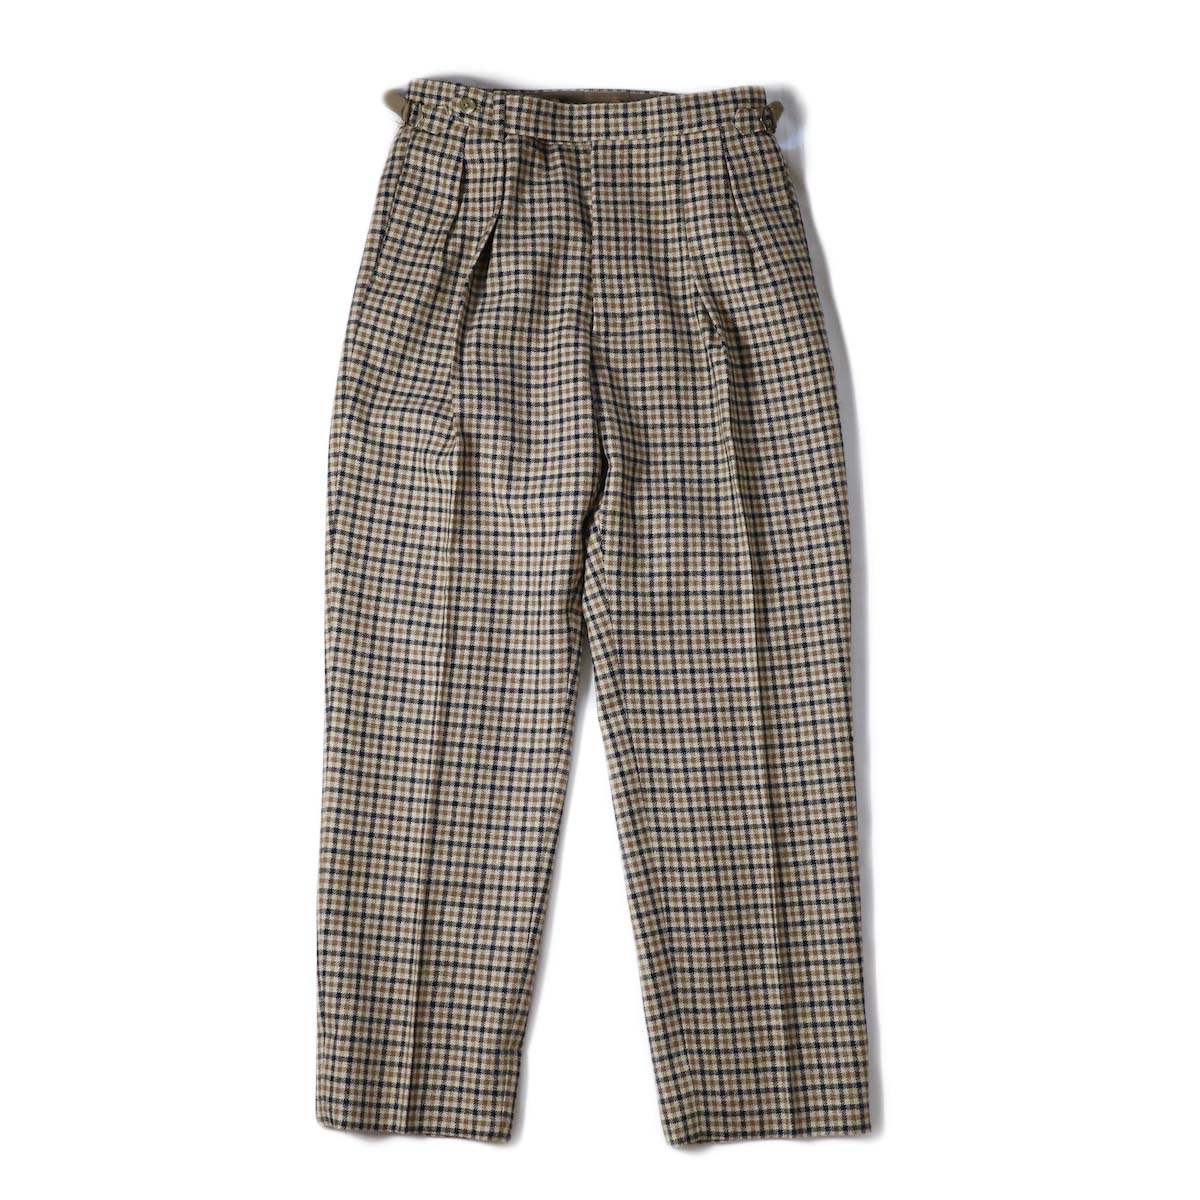 Kaptain Sunshine / Two Pleats Trousers